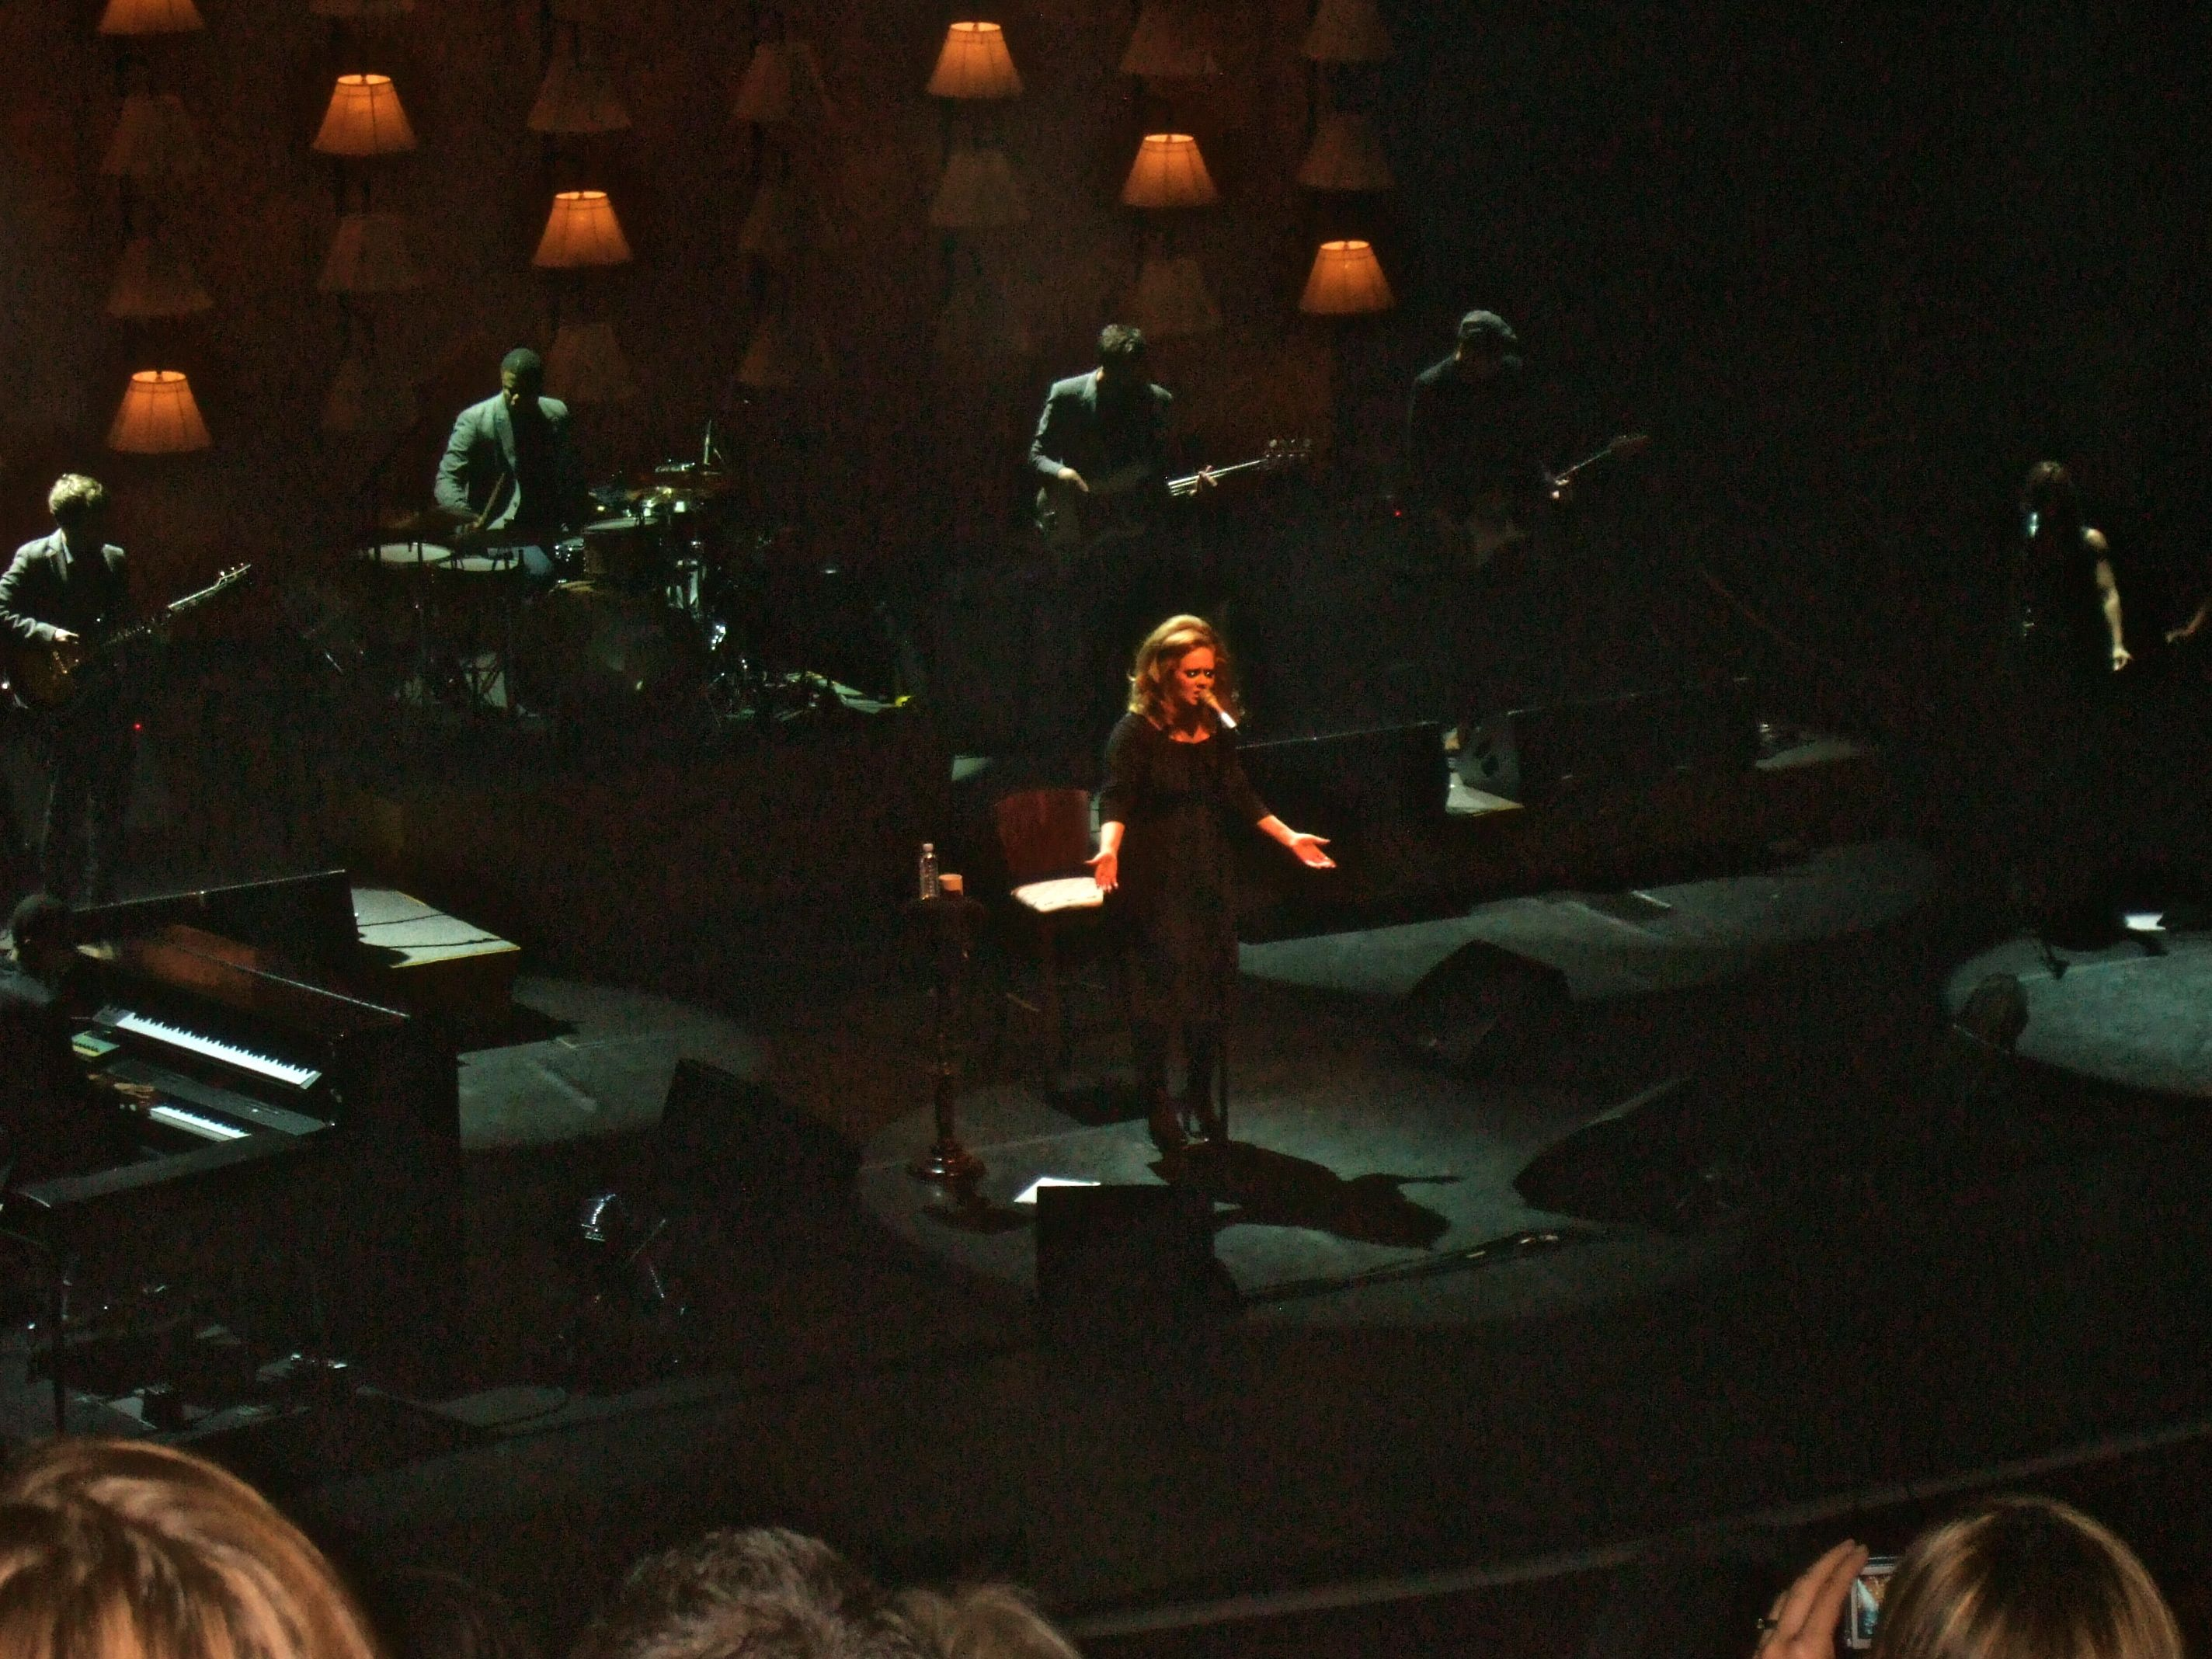 Adele Live Concert Tour #Adele Manchester, 2011 #music